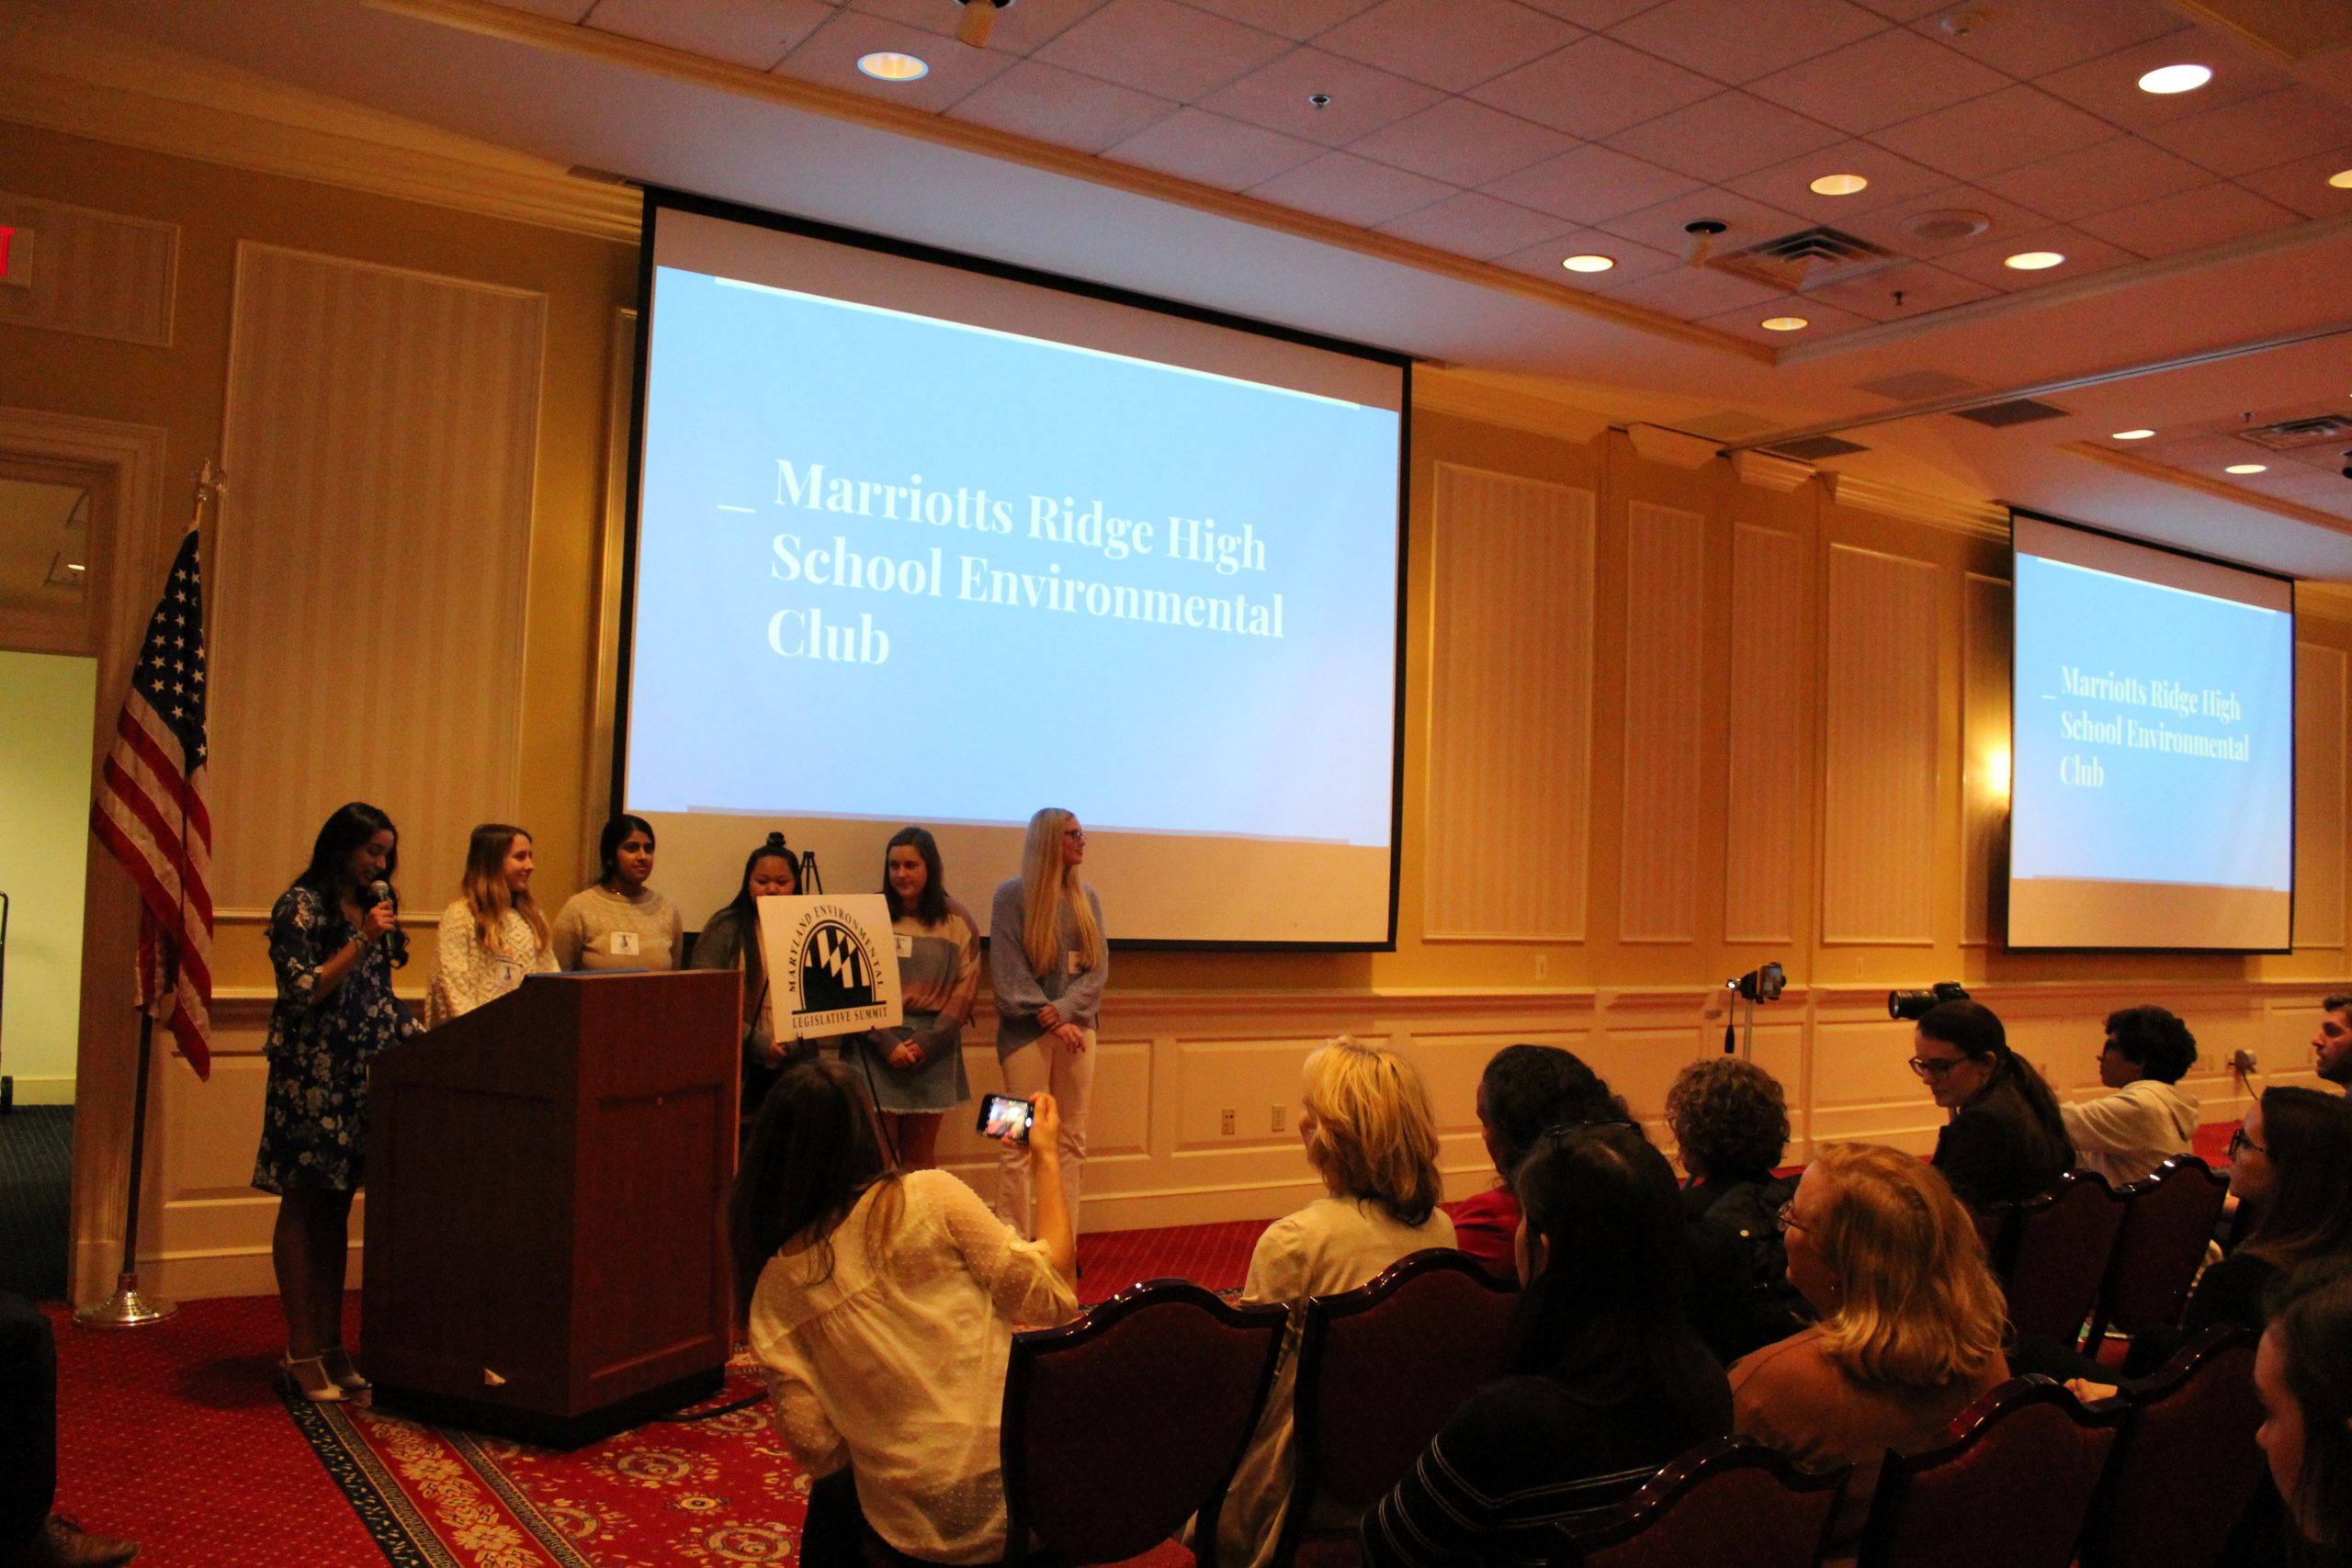 Students from Marriotts Ridge High School Environmental Club giving a presentation